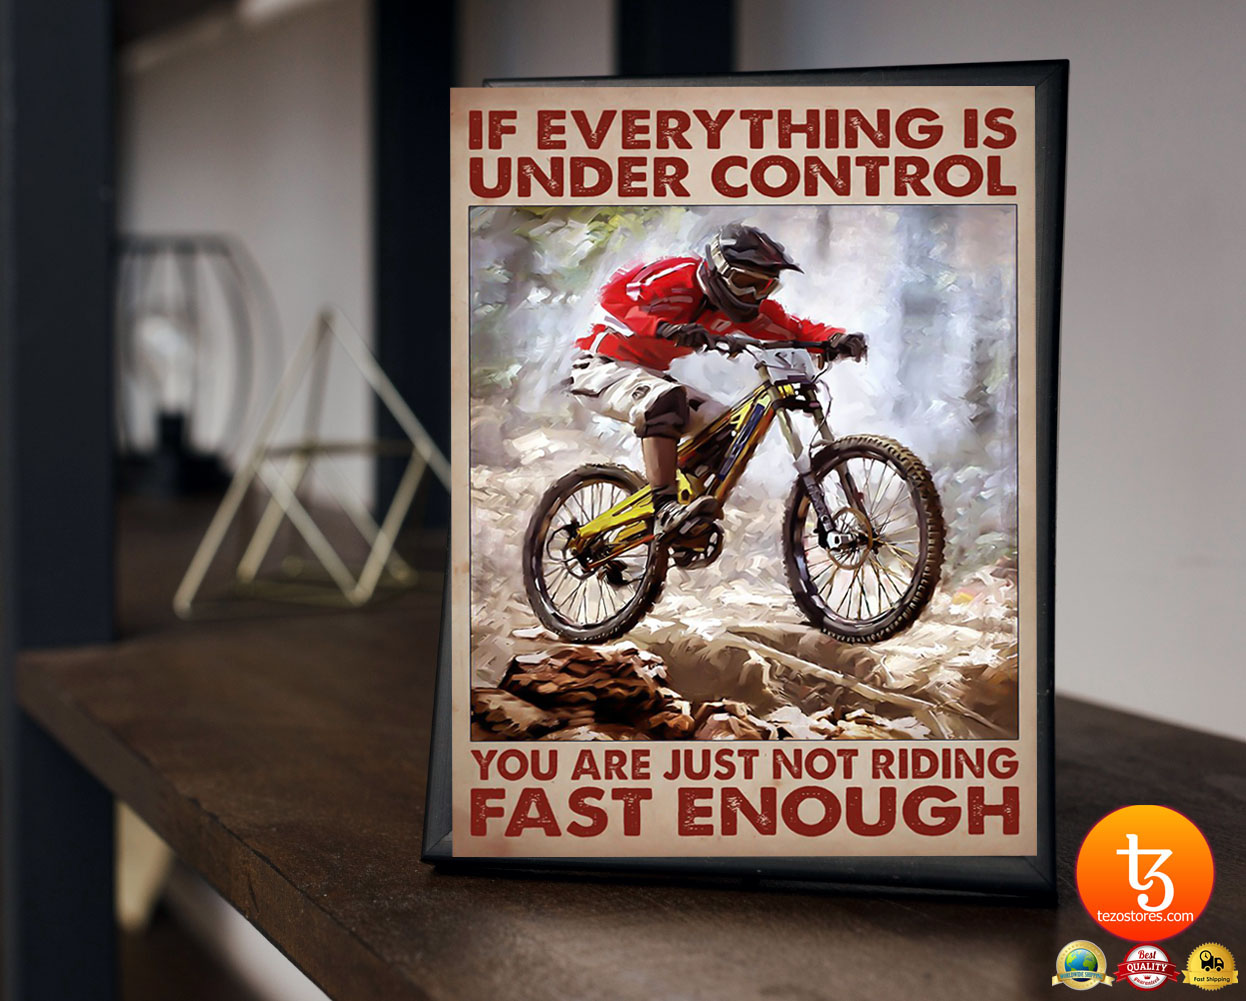 If everything is under control you are just not riding fast enough poster 4